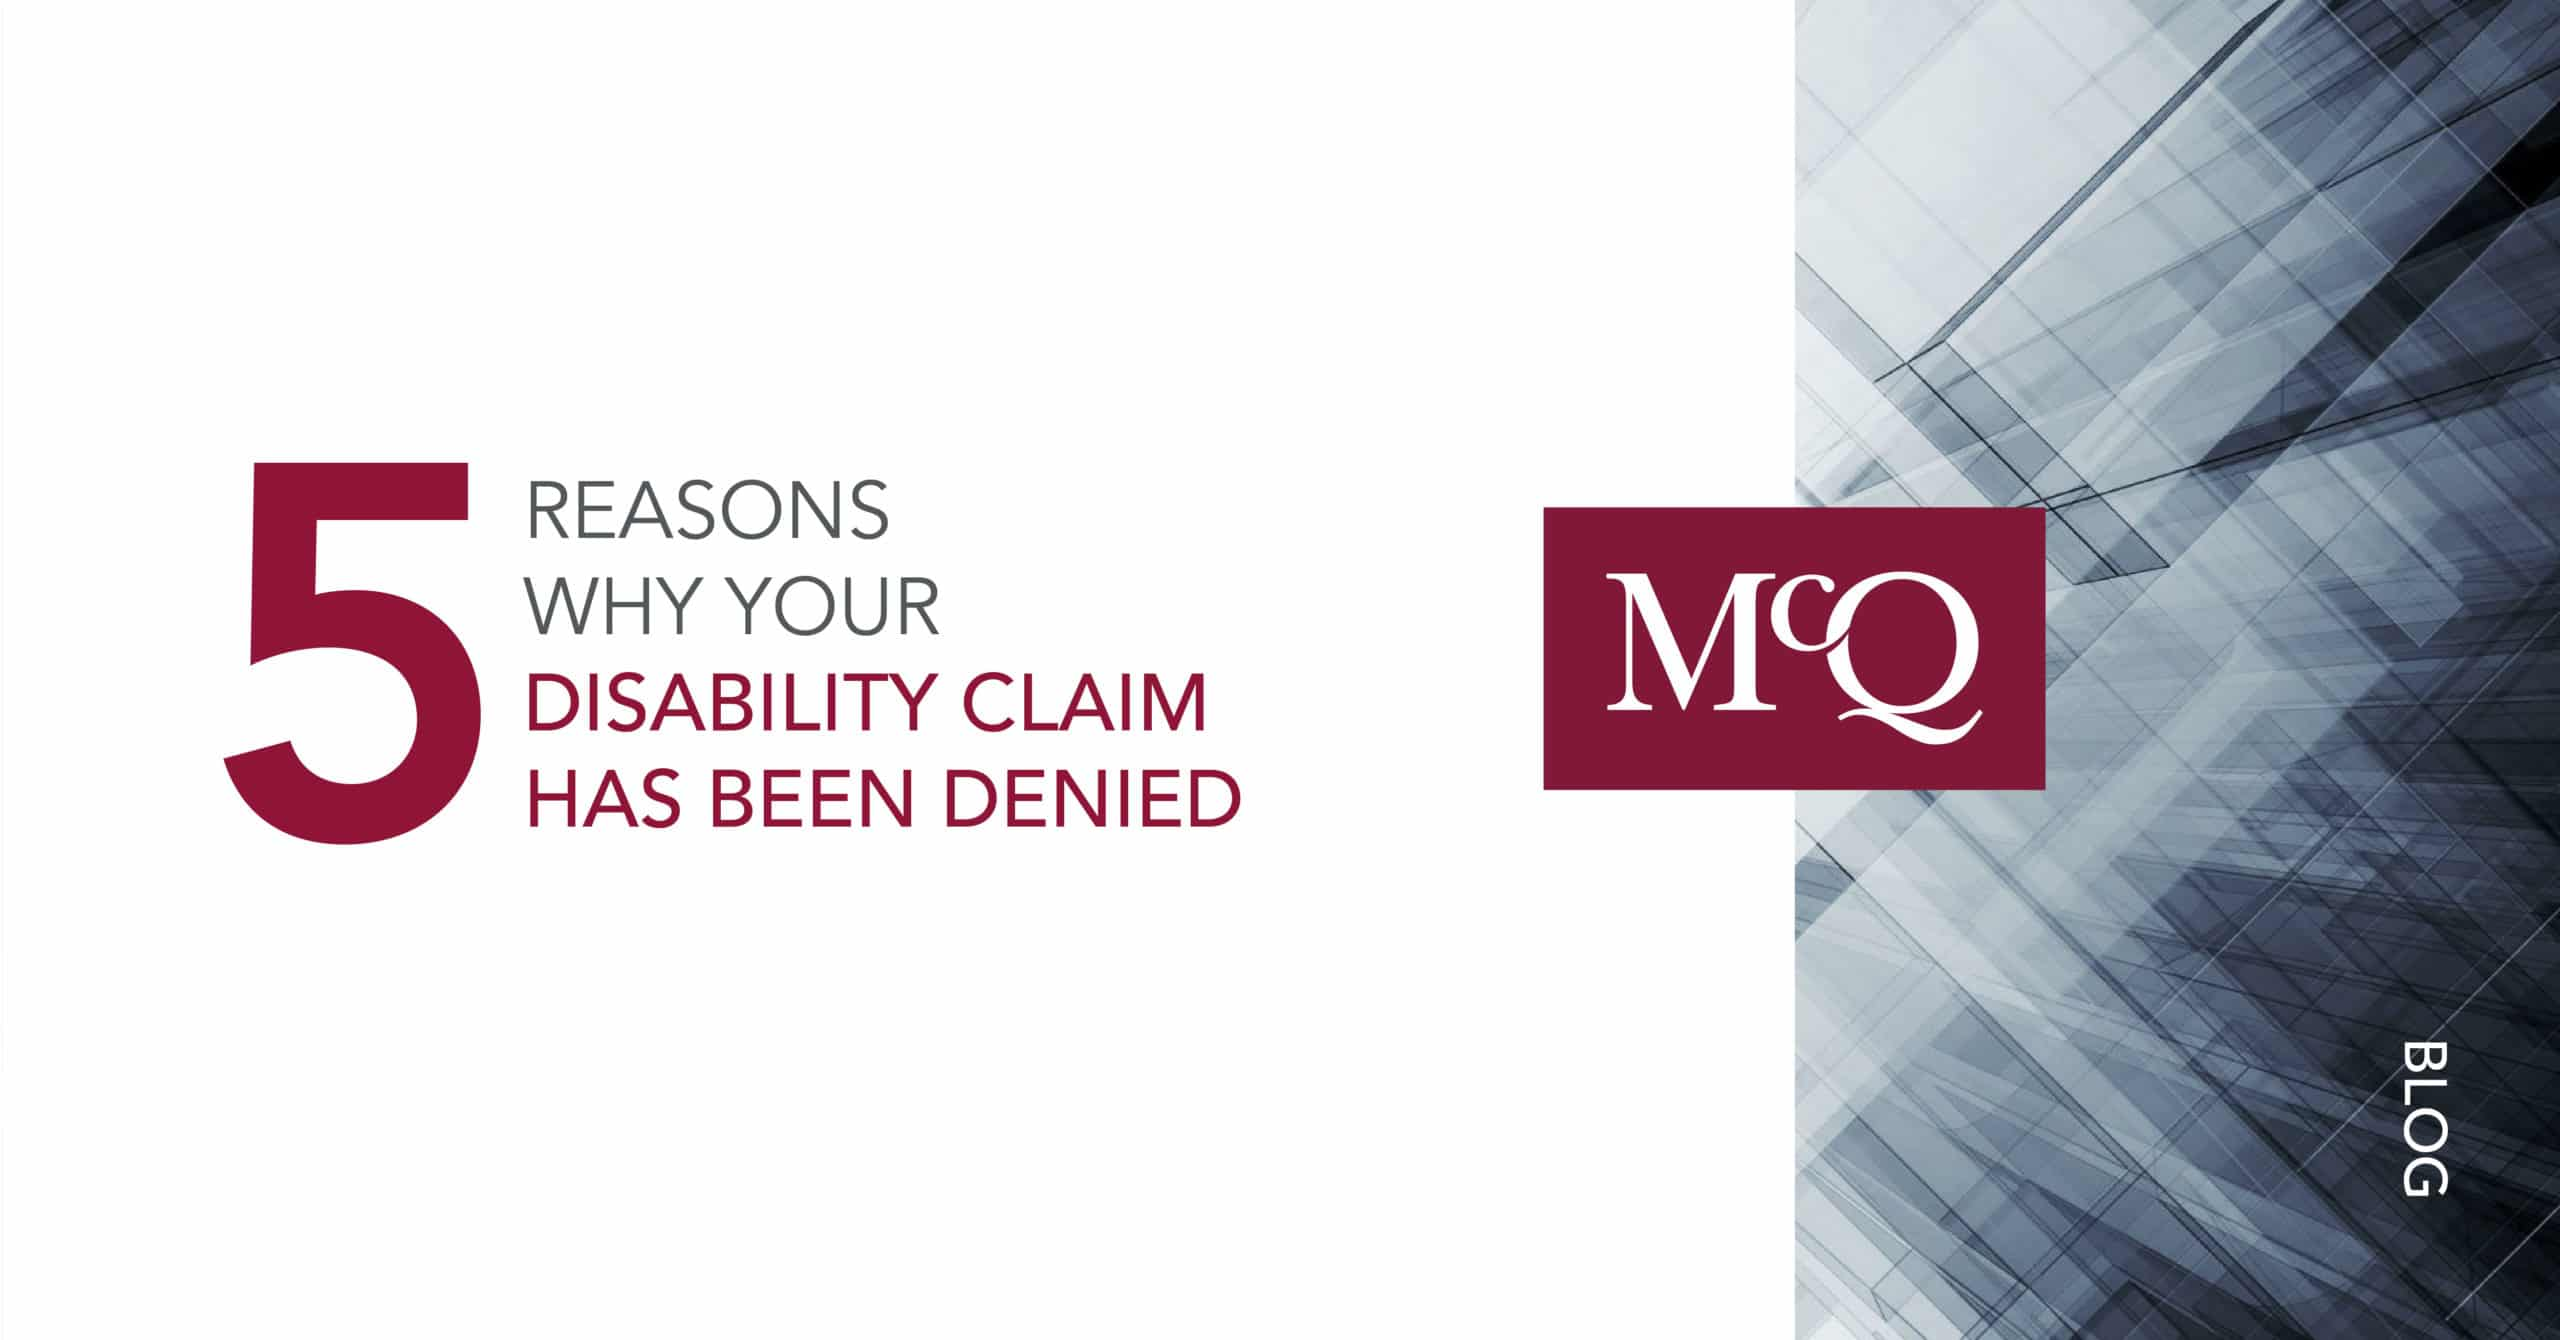 5 Reasons Why Your Disability Insurance Claim Was Denied